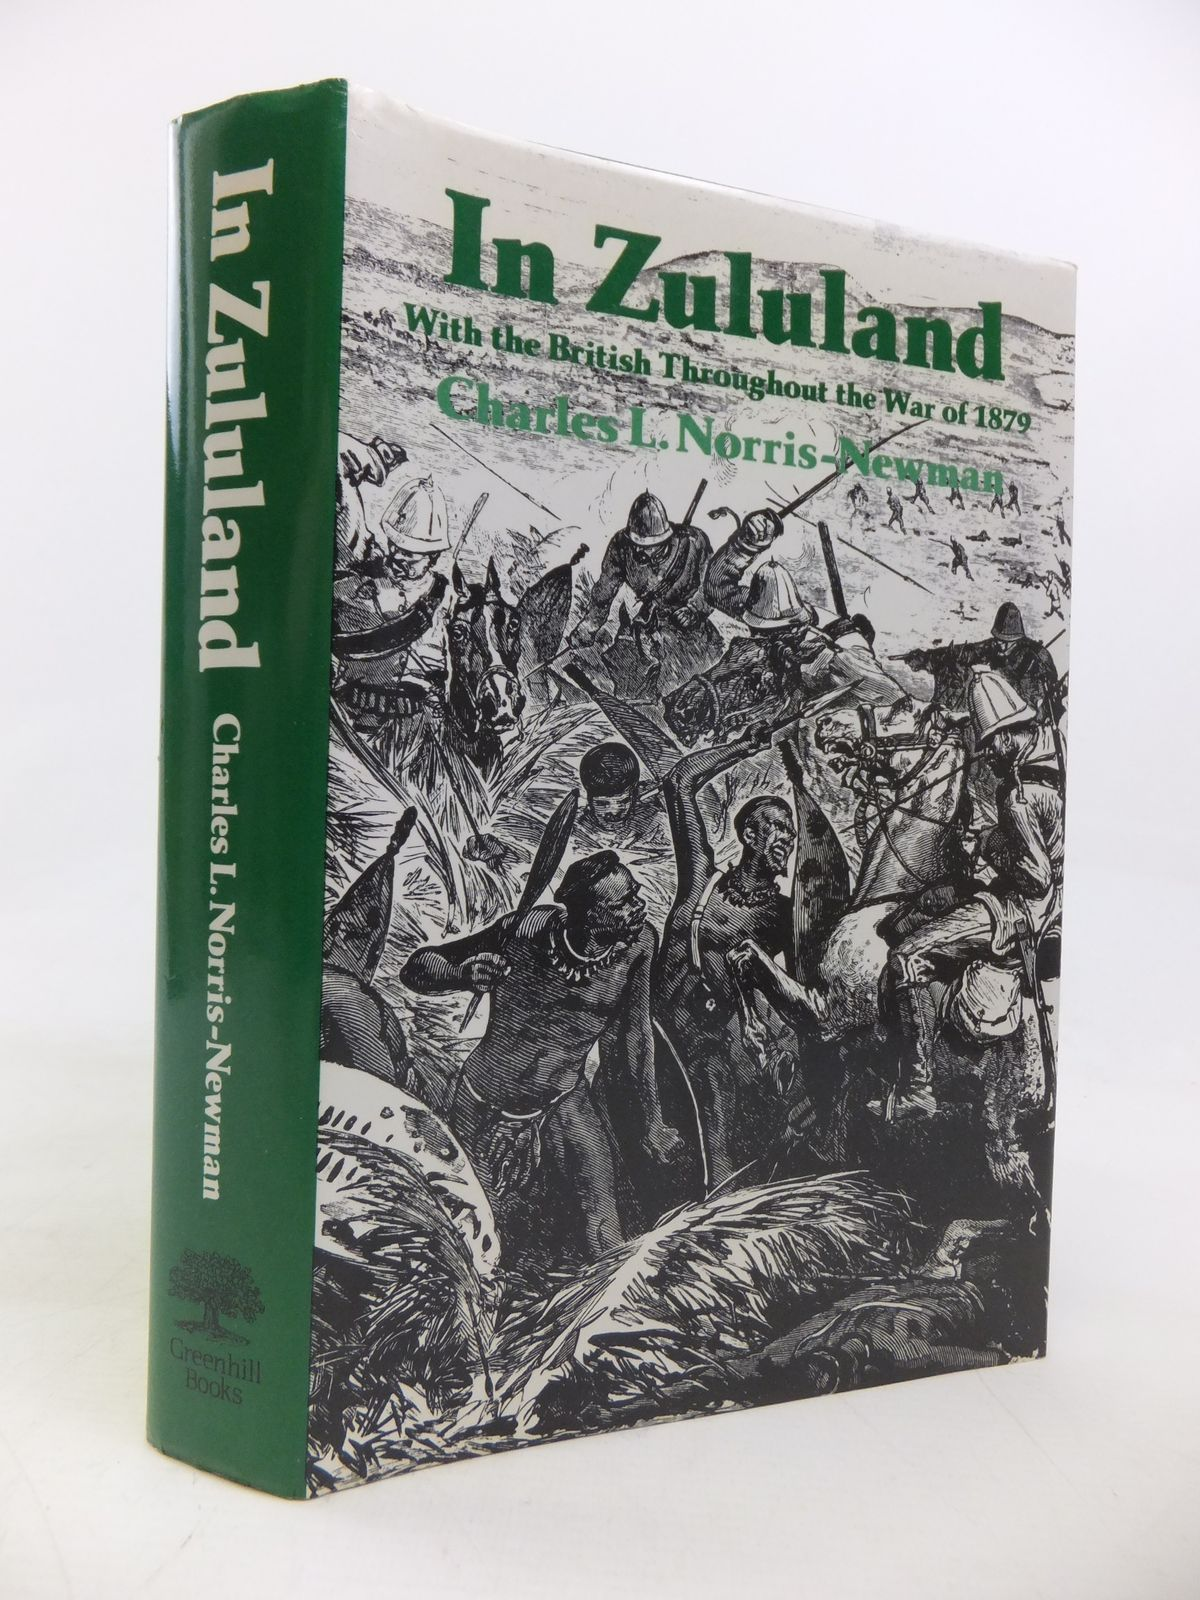 Photo of IN ZULULAND WITH THE BRITISH THROUGHOUT THE WAR OF 1879 written by Norris-Newman, Charles L. published by Greenhill Books (STOCK CODE: 1810324)  for sale by Stella & Rose's Books